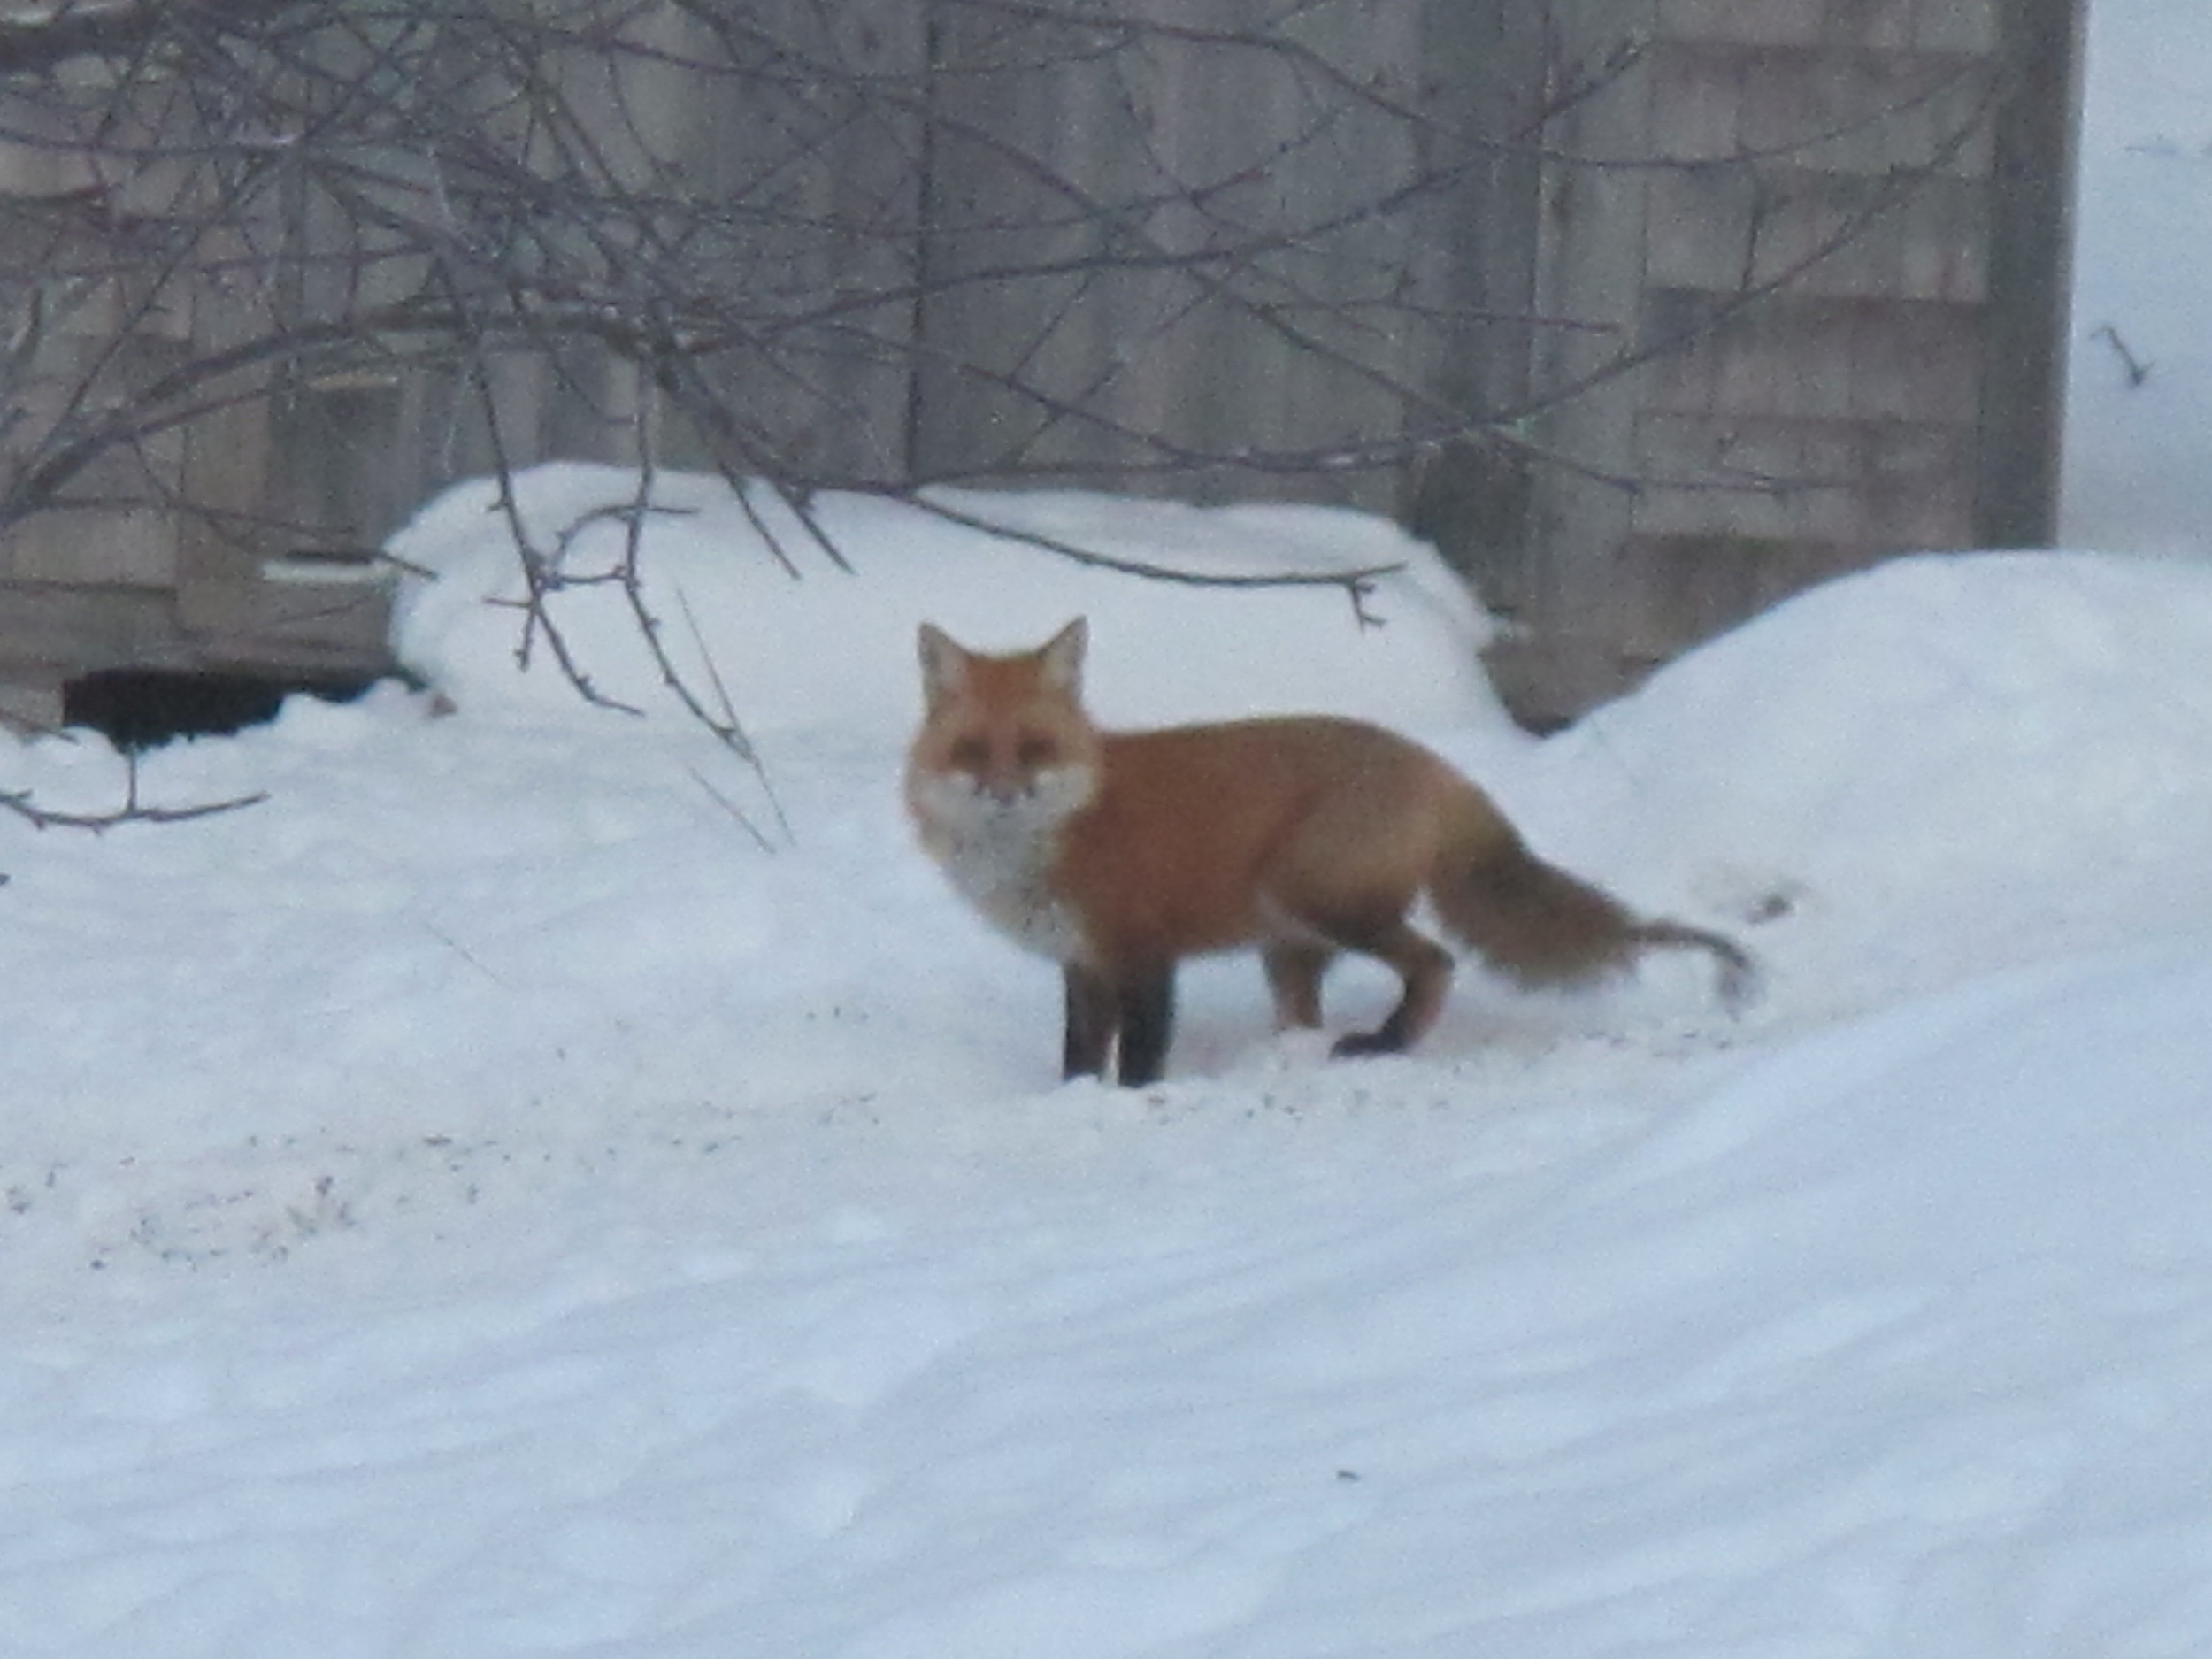 A fox also hung out around the house but ignored the frozen duck. As you can tell from the missing chunk of his tail, he's been through some battles of his own lately.